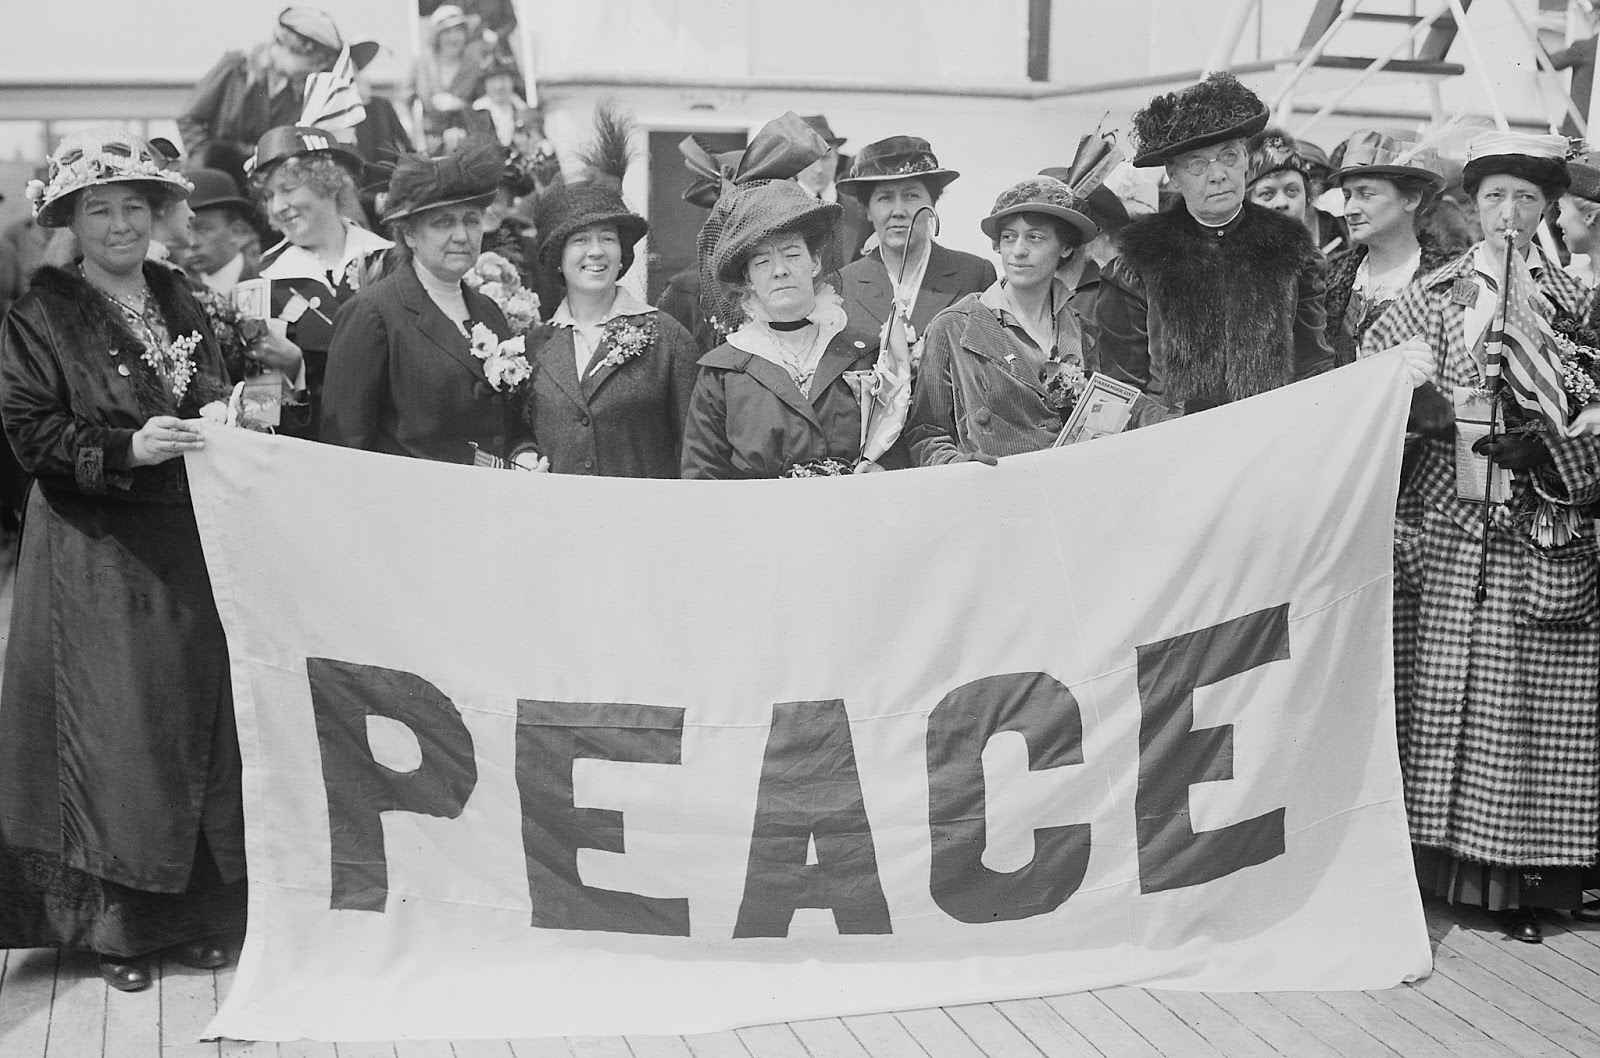 a black and white photo of women protestors in the 1900s holding a large PEACE banner